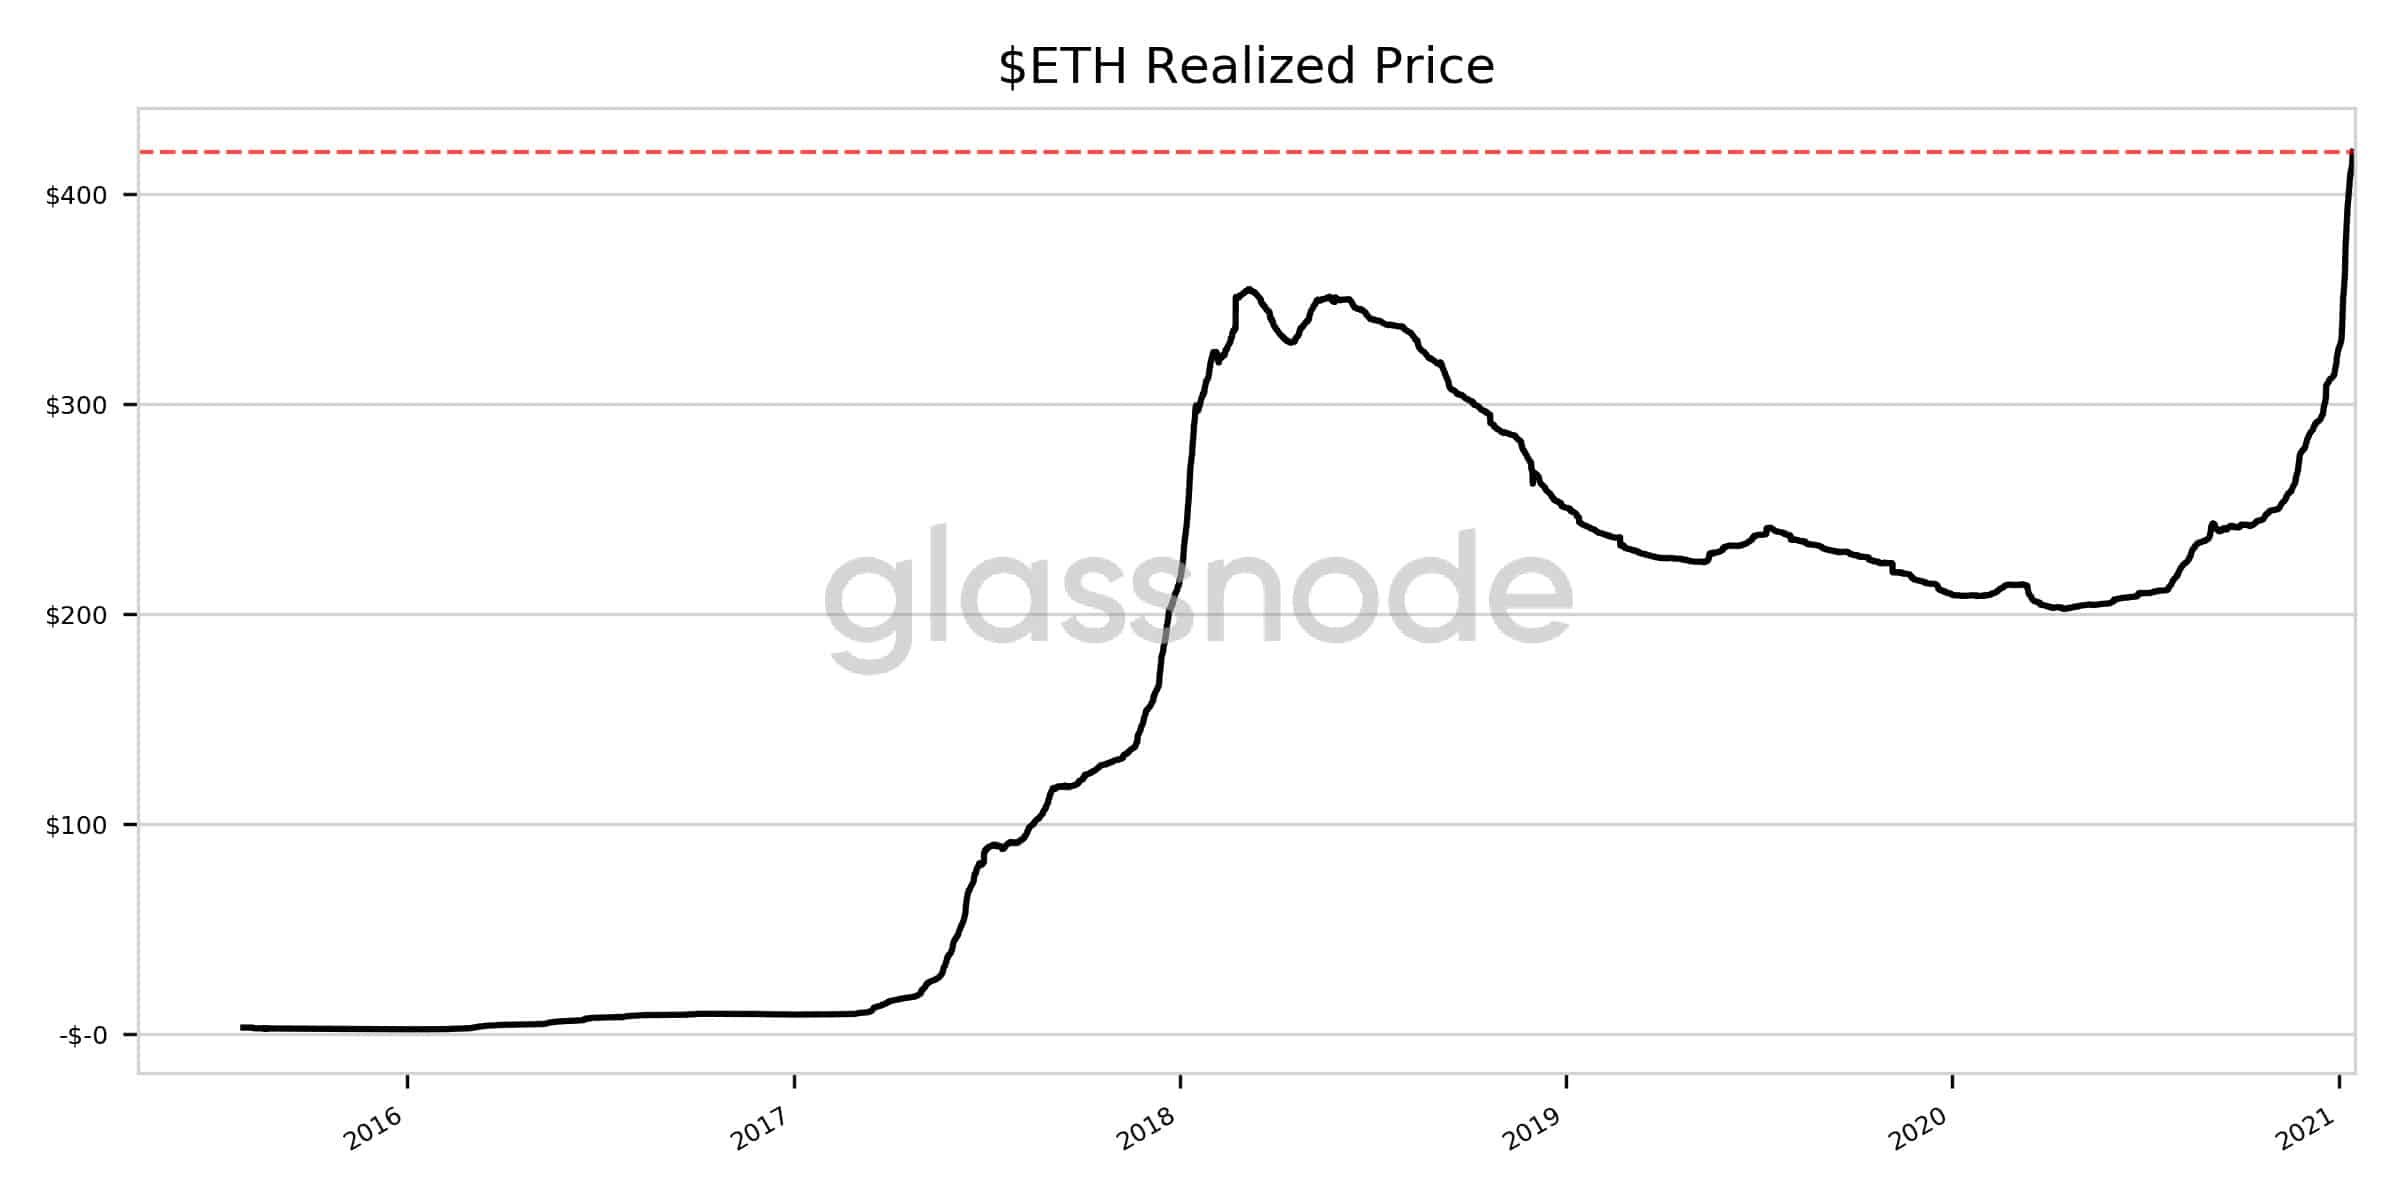 ETH Realized Price. Source: Glassnode